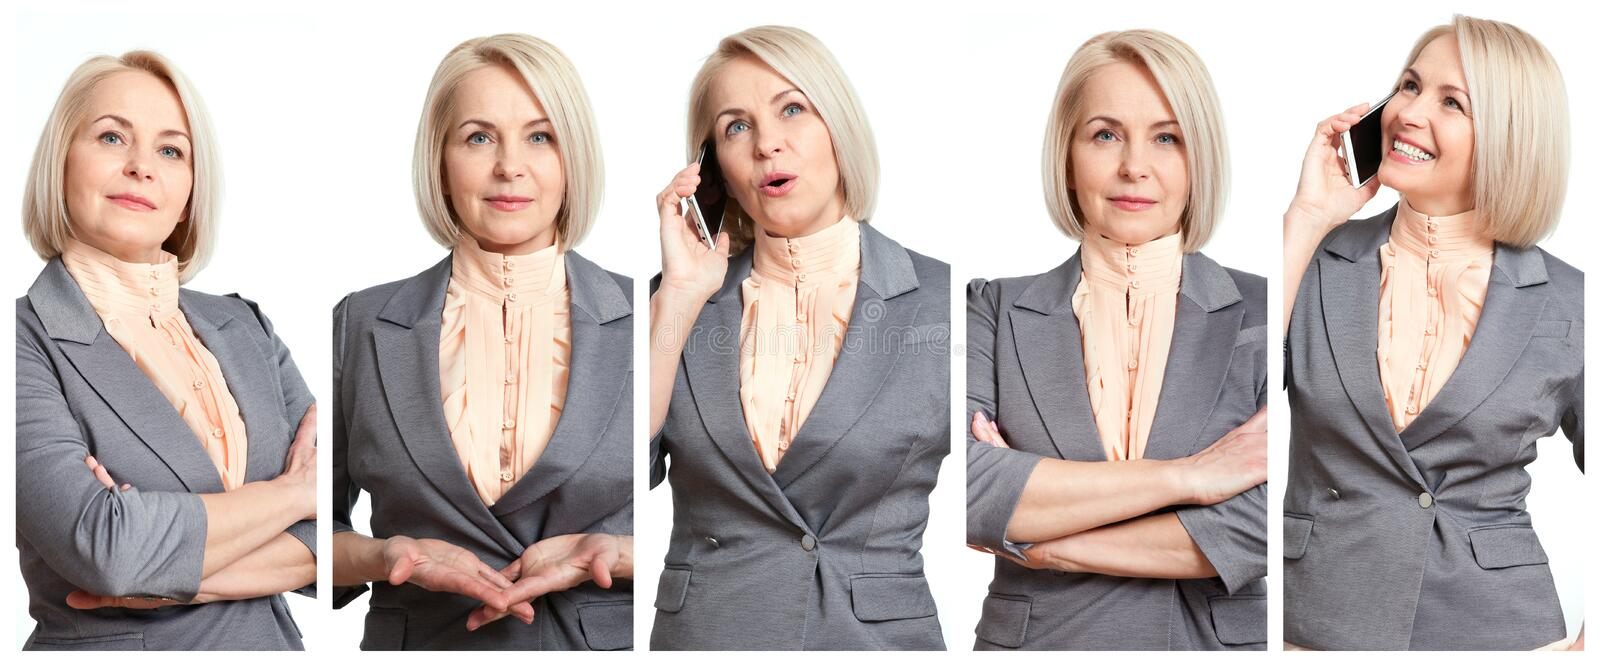 Woman in different situations collage. Beautiful middle-aged businesswoman in joy, serious, talking on cell phone stock images